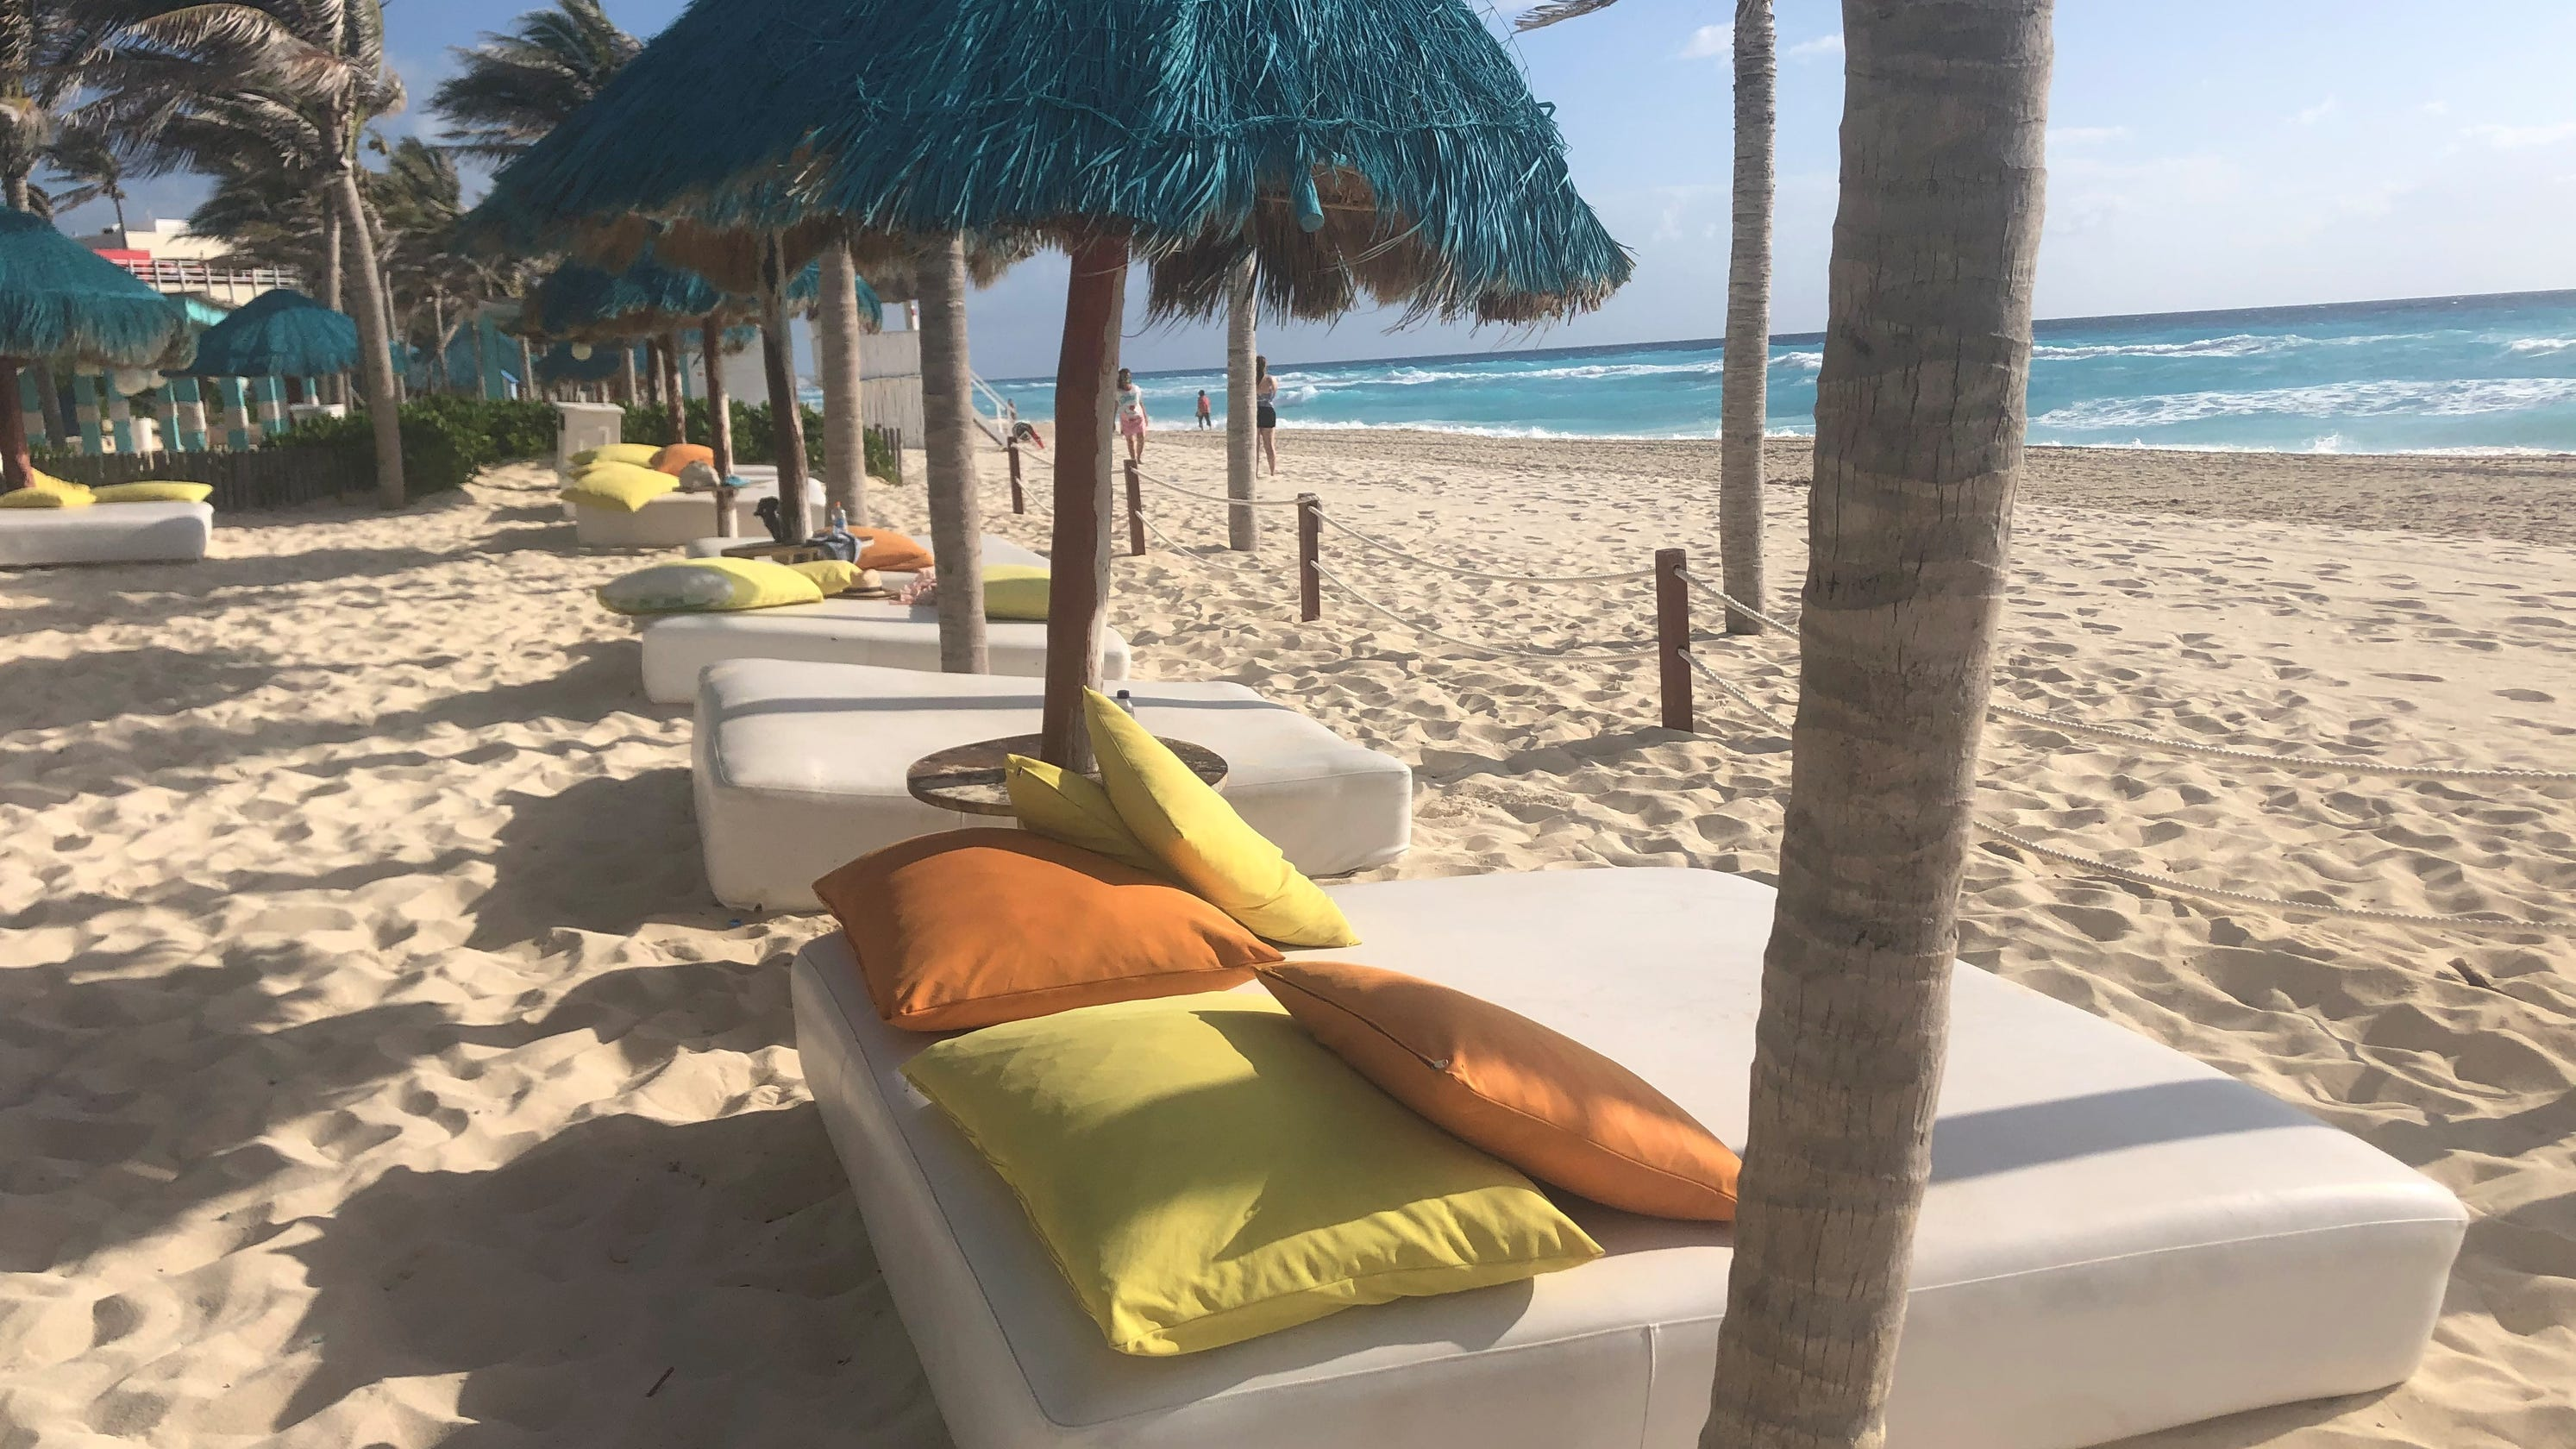 Mexico's Caribbean coast including Cancún, Cozumel, Tulum at 'imminent risk' of lockdown